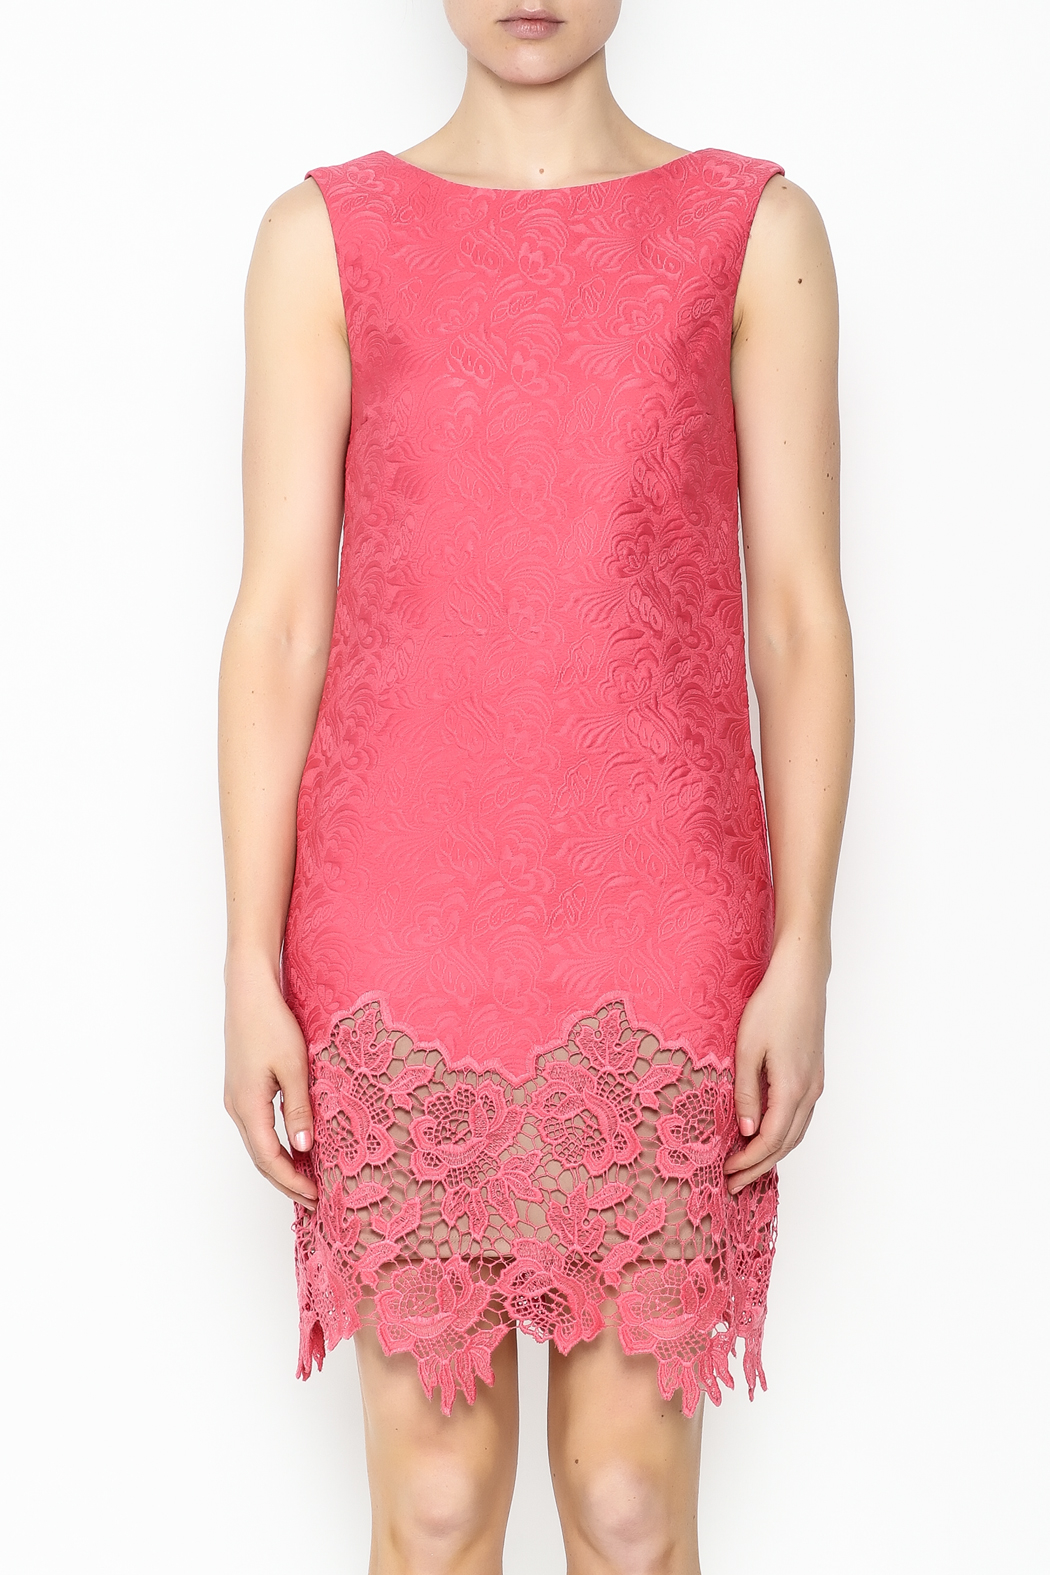 Tracy Reese Ella Lace Sheath Dress - Front Full Image